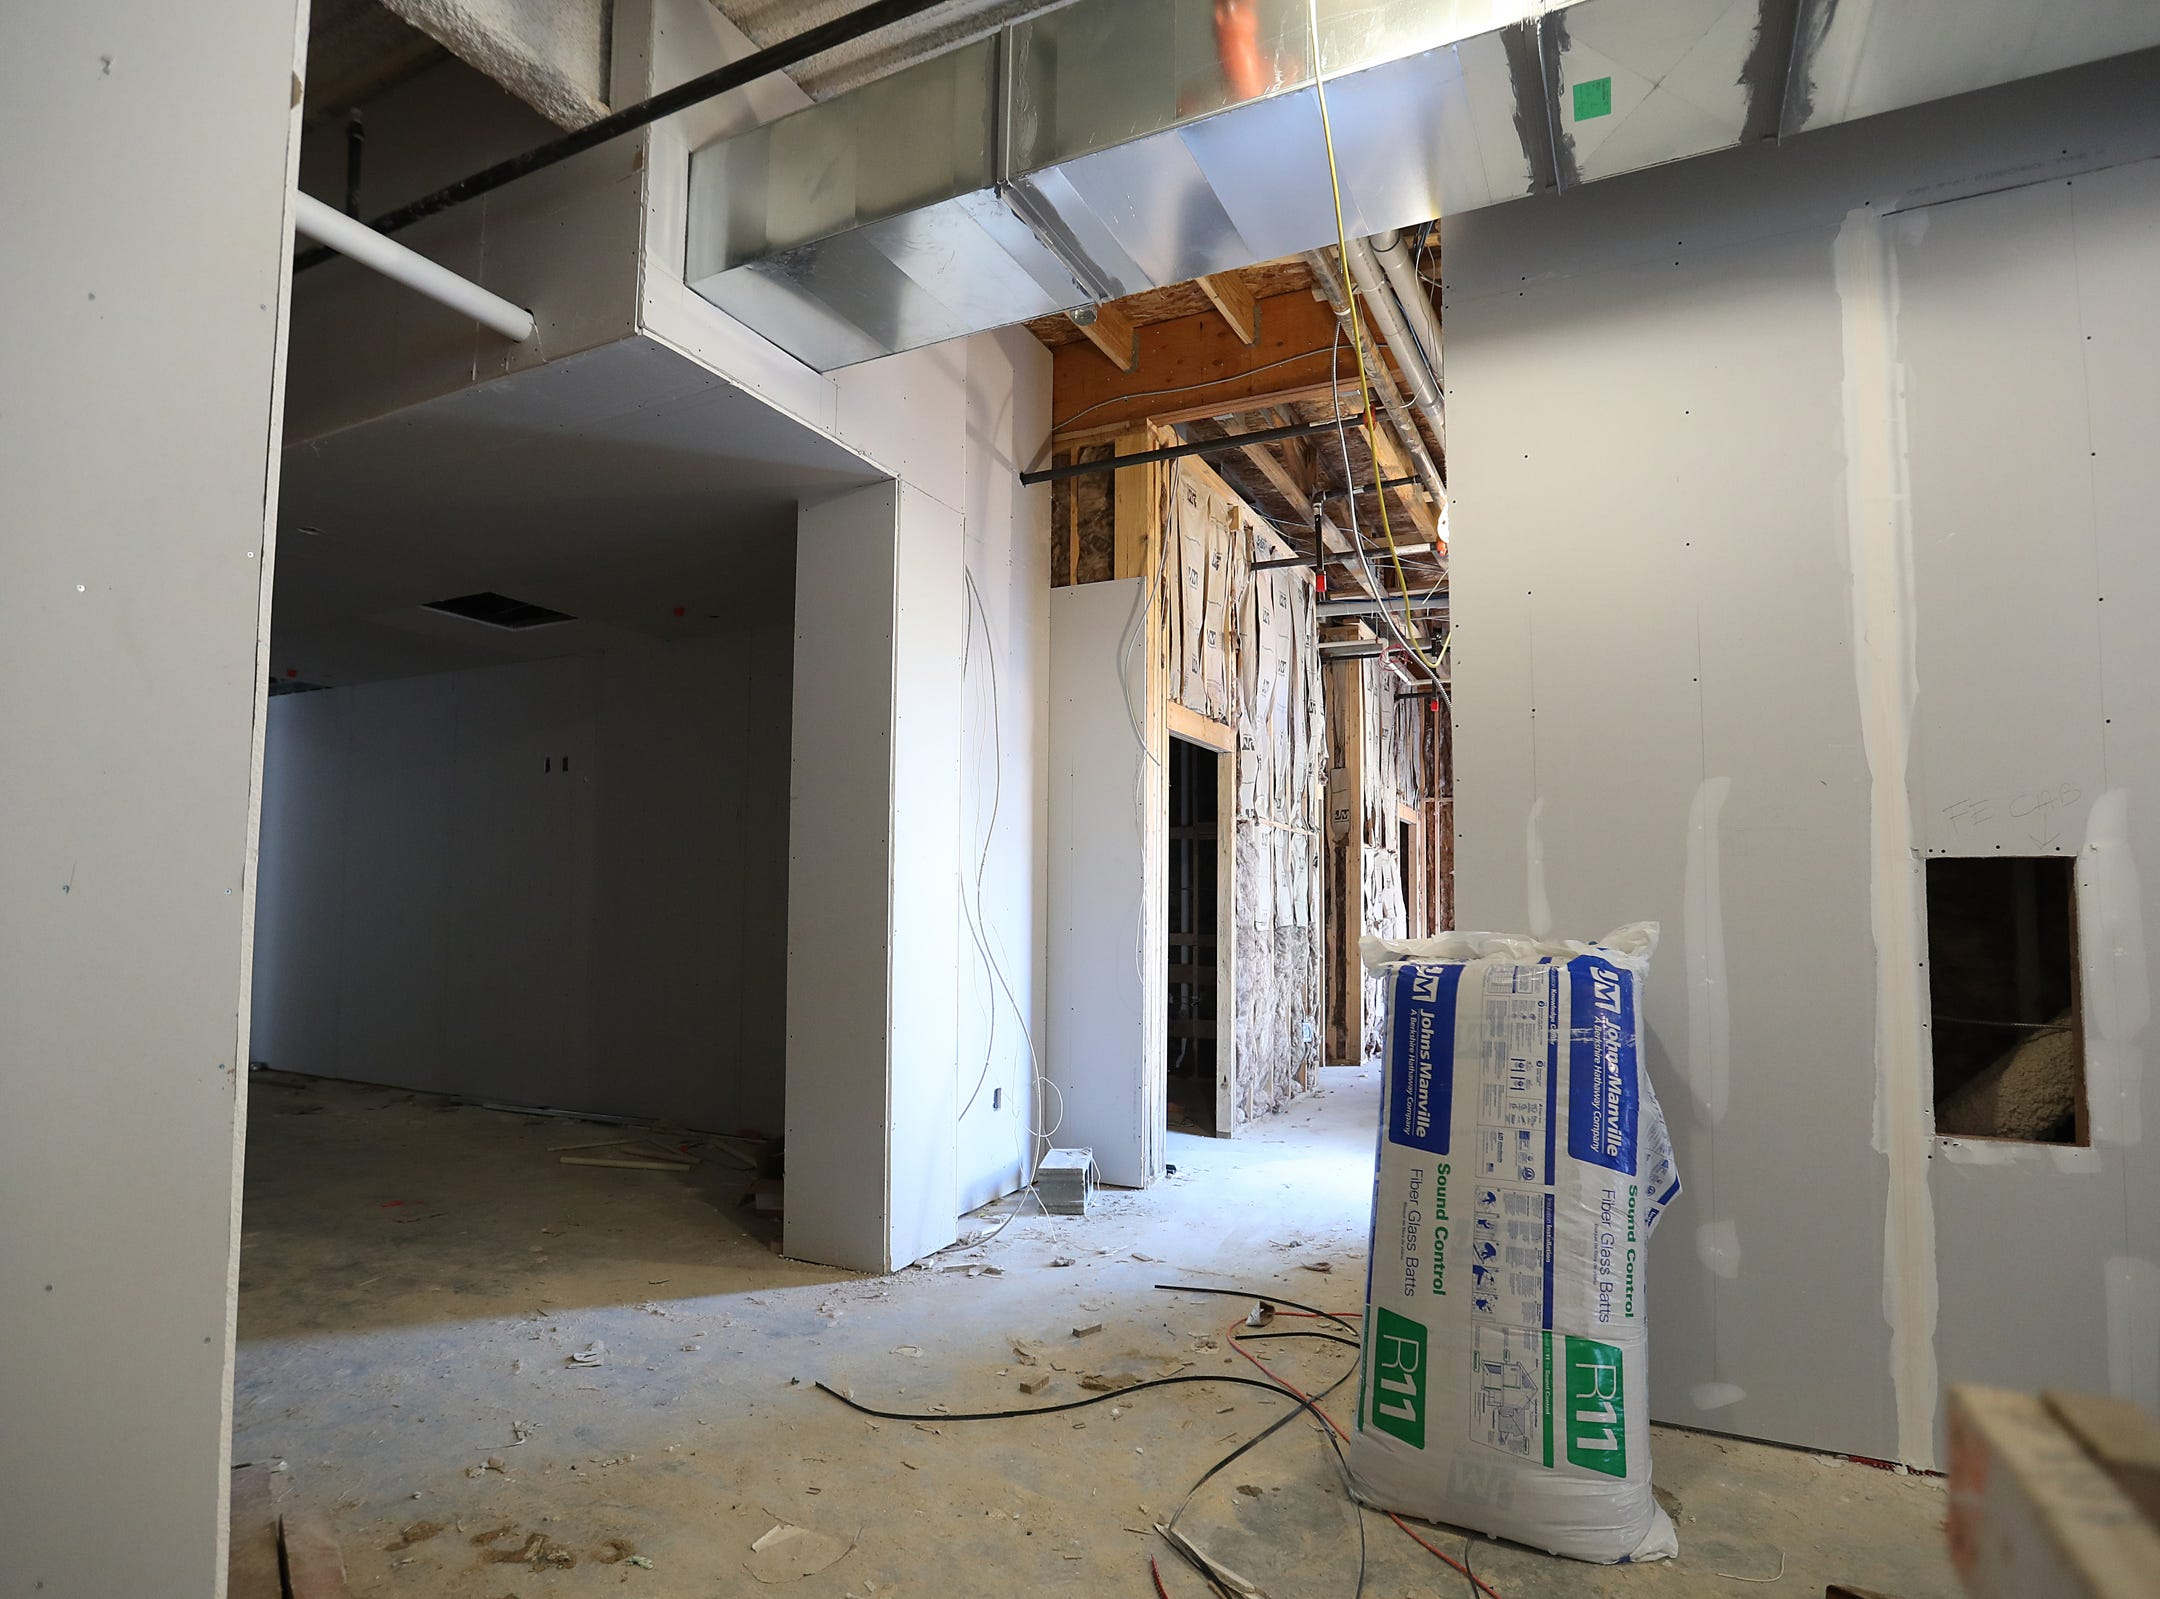 The view inside the mid-construction Spark Apartments in Fishers, Ind., on Friday, Sept. 14, 2018. The apartments, at North Street and Lantern road, will 200 offer one-, two- and three-bedroom apartment units and 11 live/work spaces.